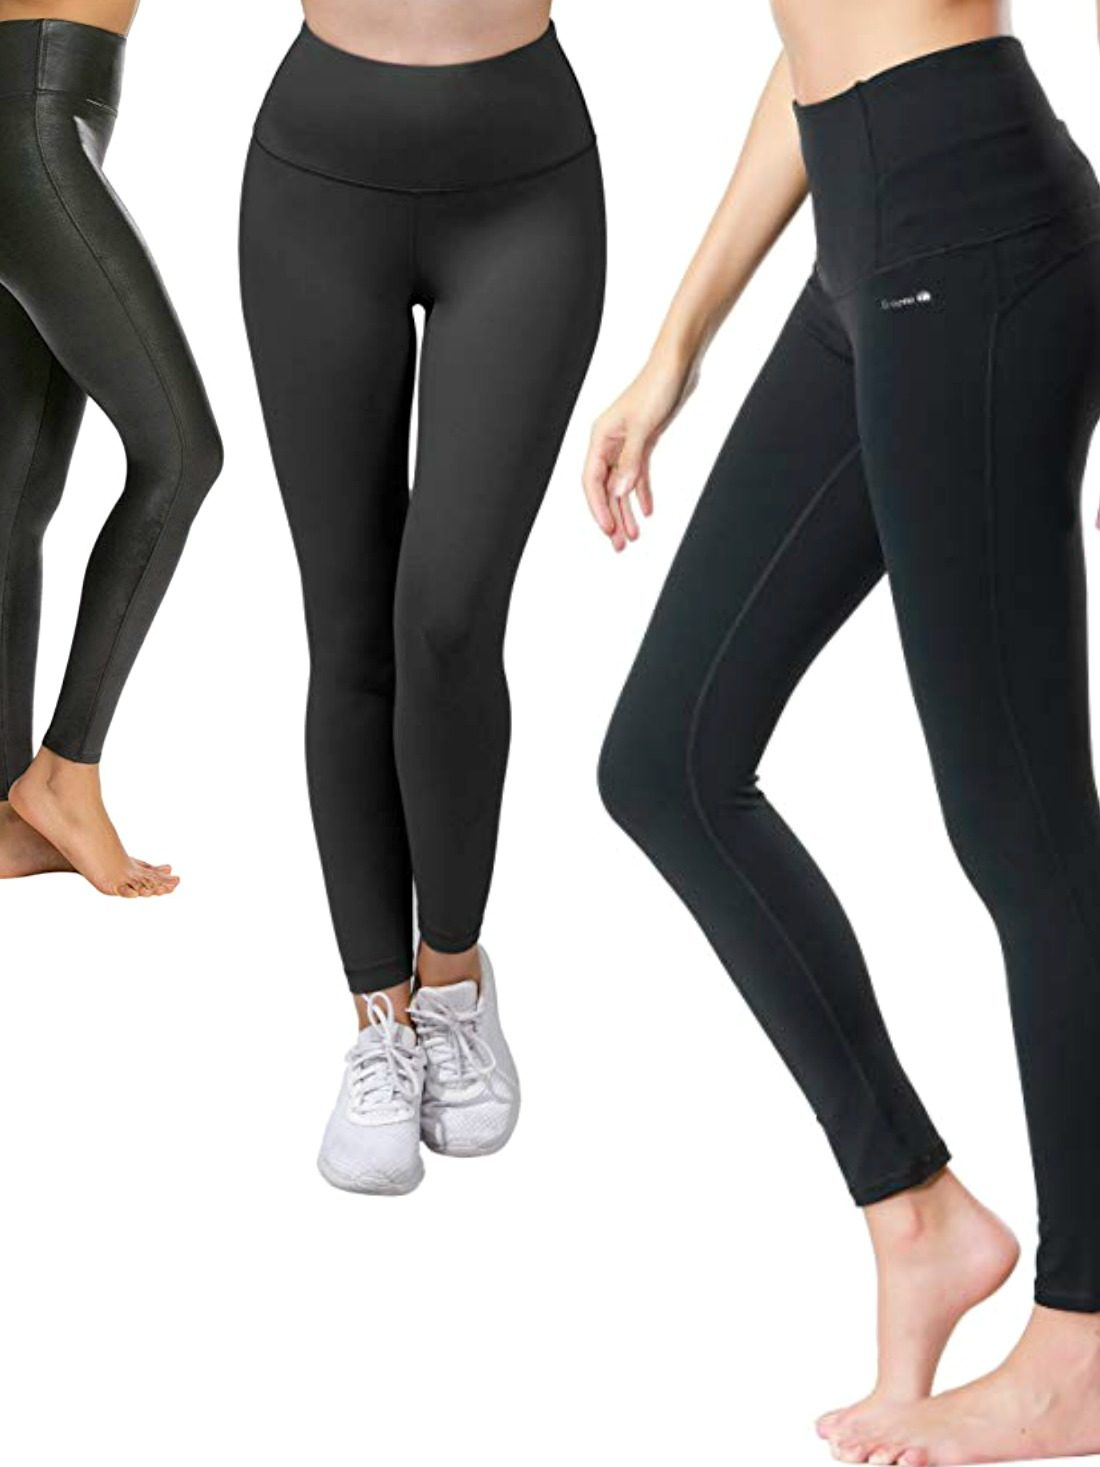 NEW Ladies Black Plain High Waist Stretchy Soft Leggings Tummy Control Plus Size